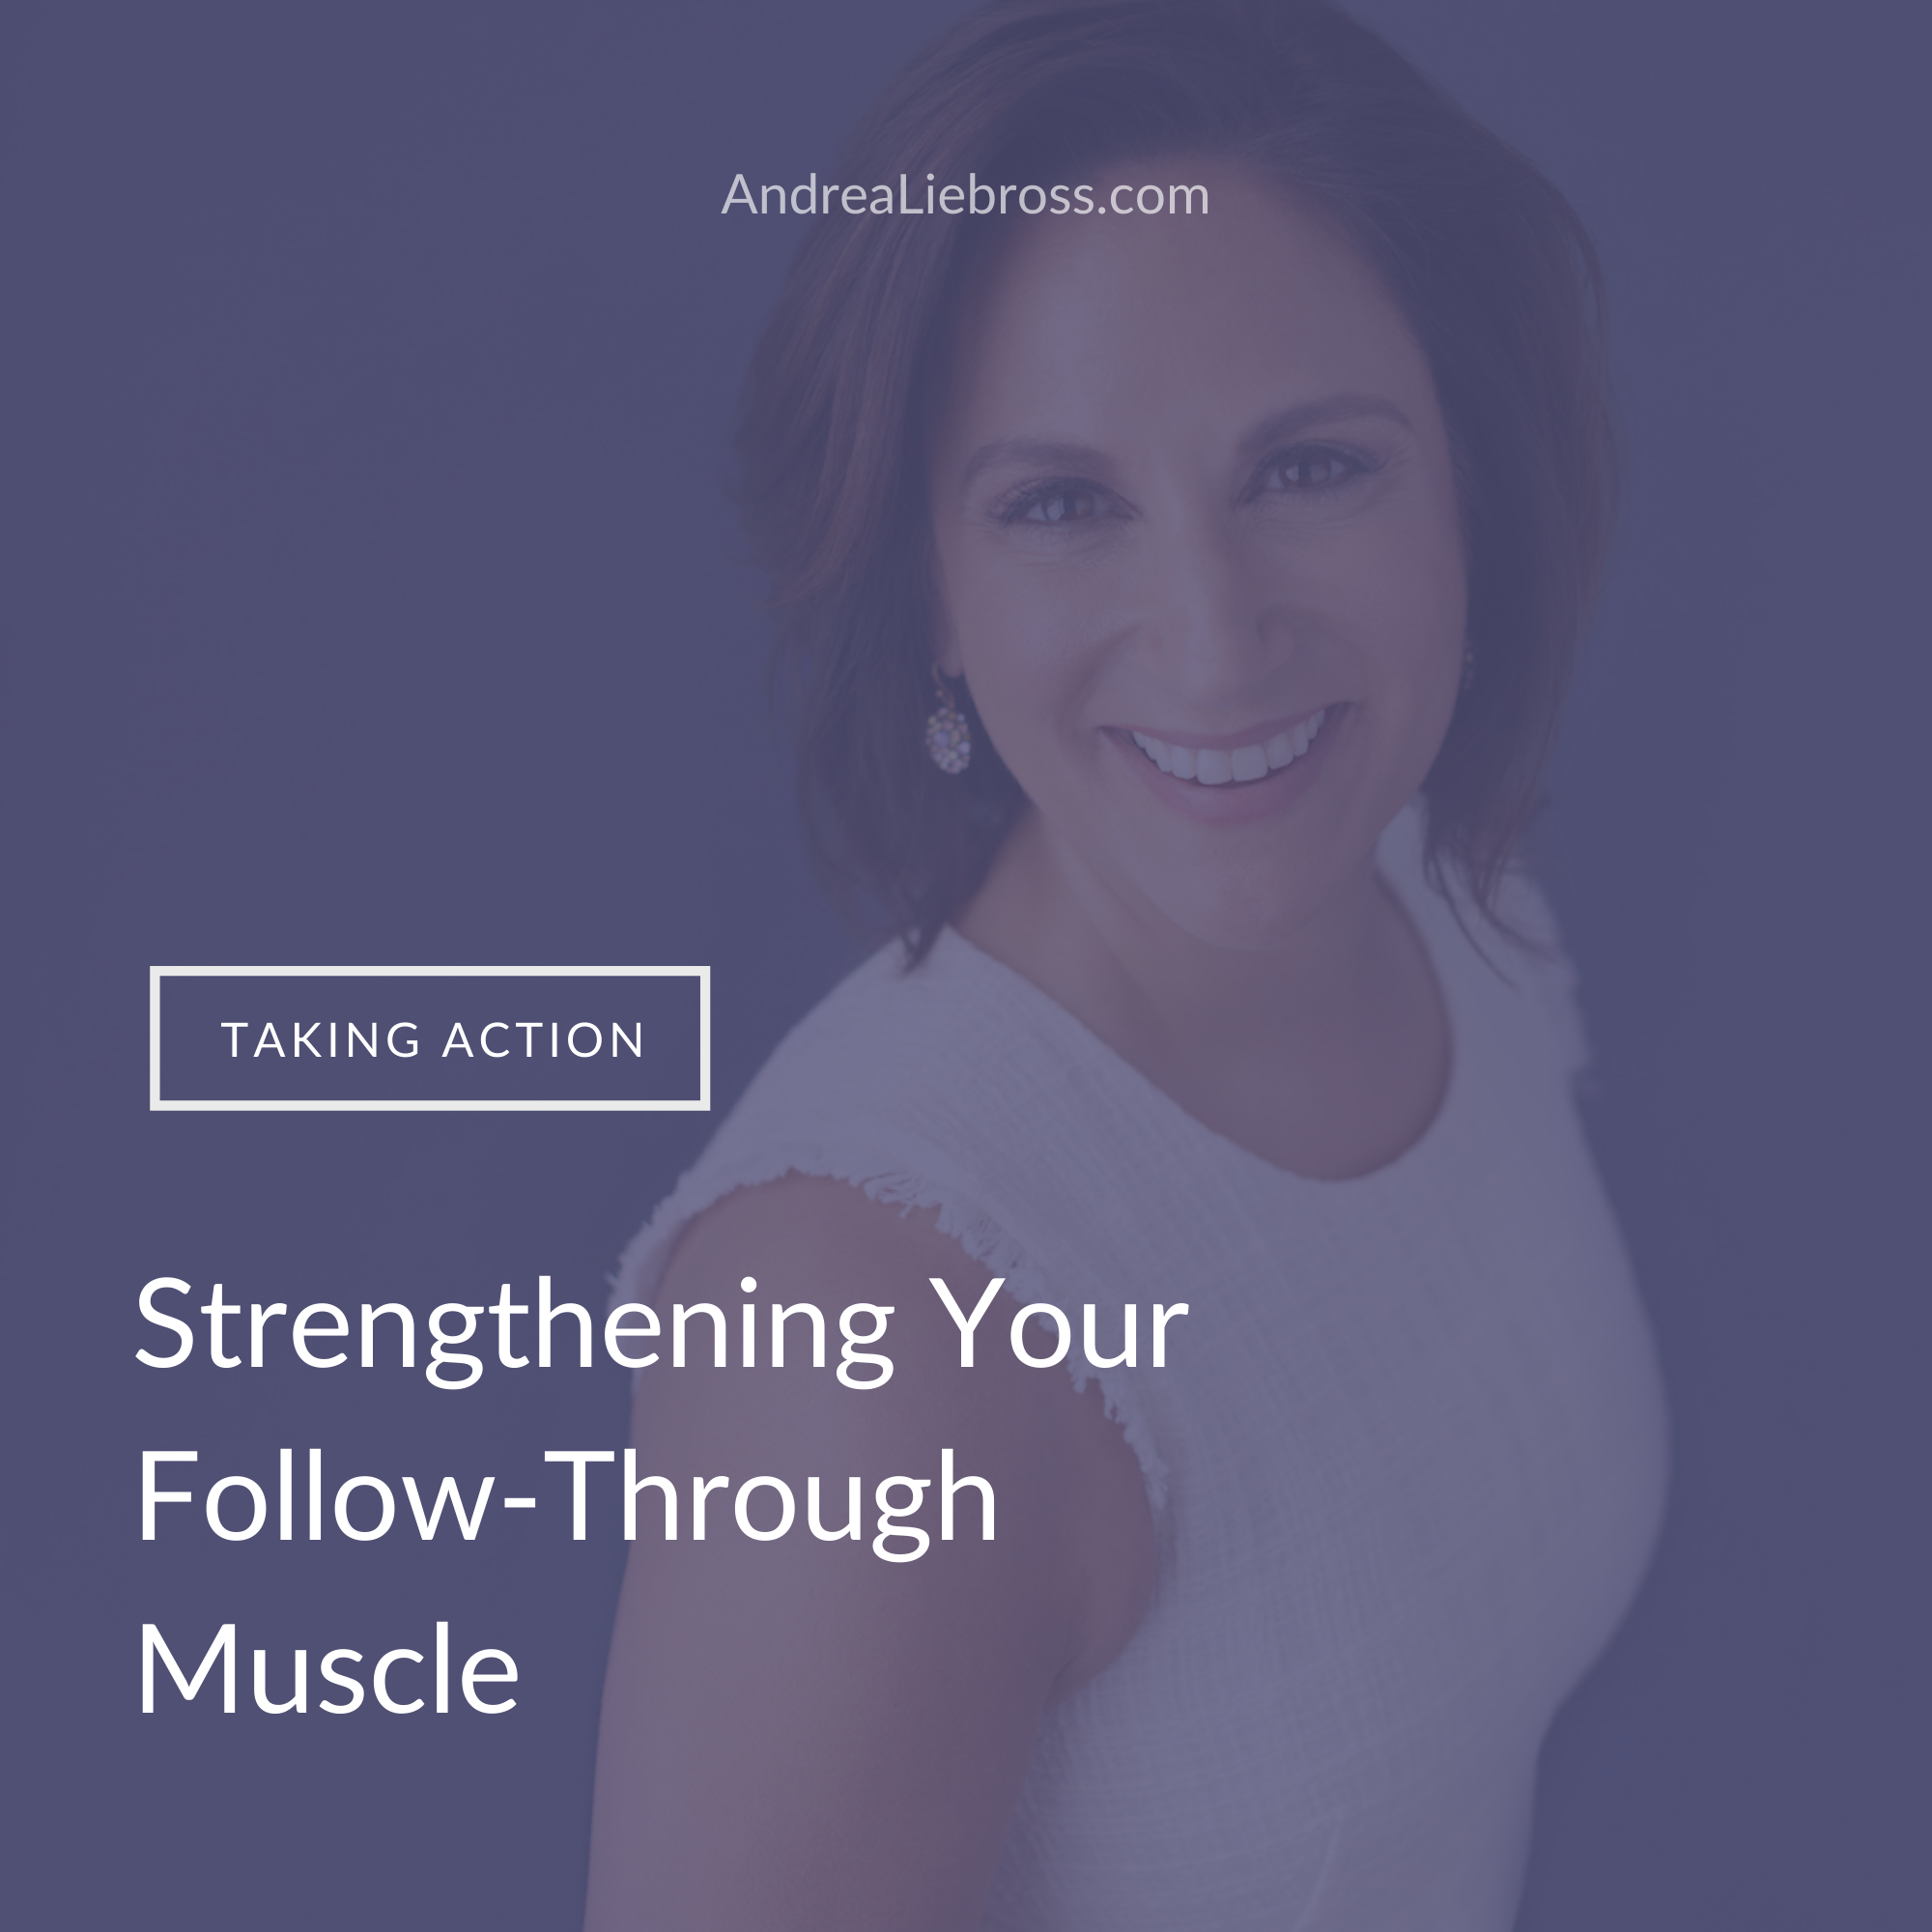 Strengthening Your Follow-Through Muscle